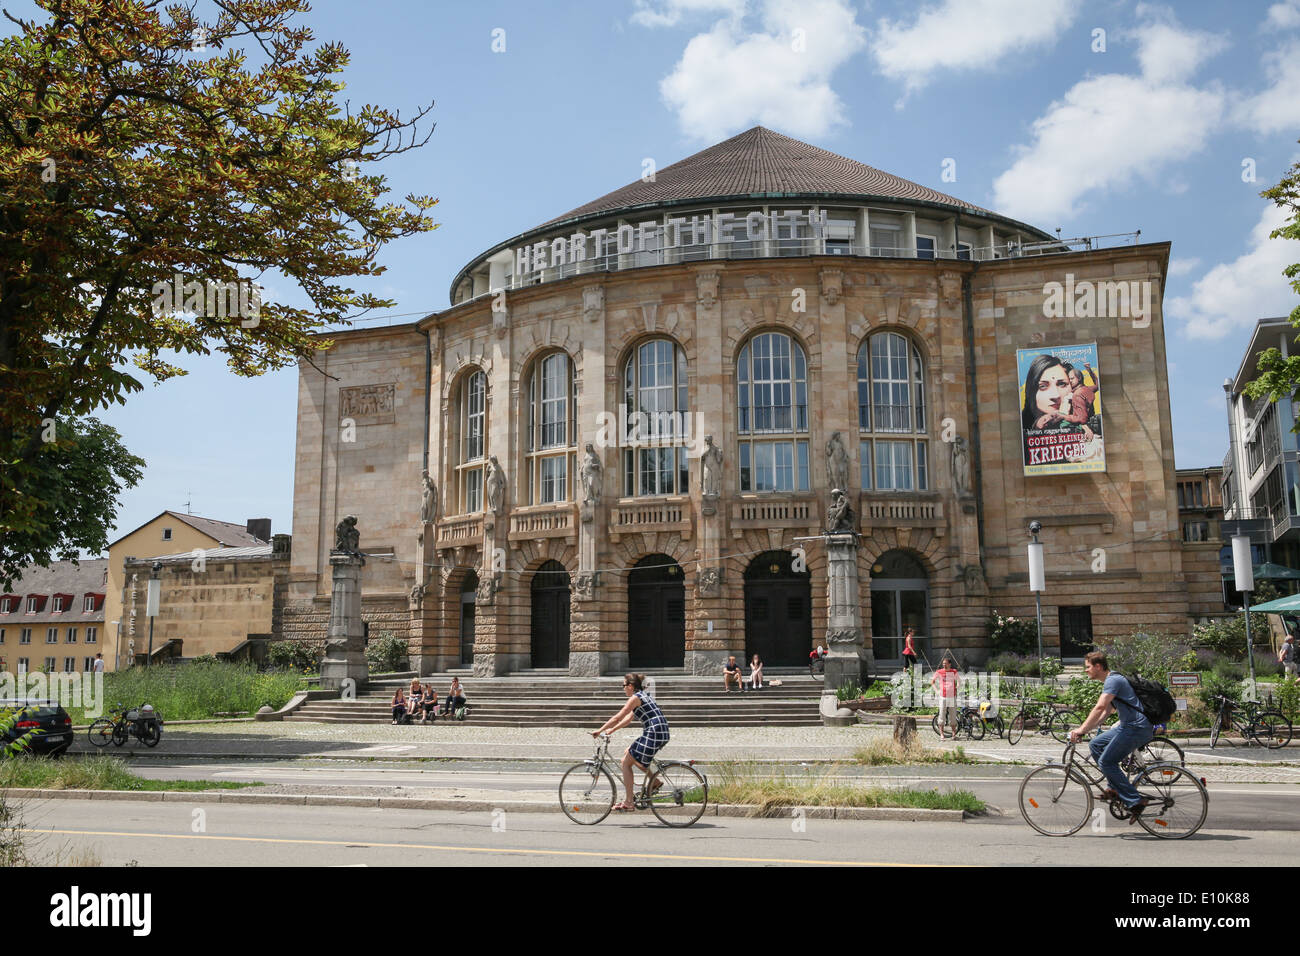 Freiburg Theater situated in the center of Freiburg im Breisgau, a city in the south-western part of Germany. - Stock Image